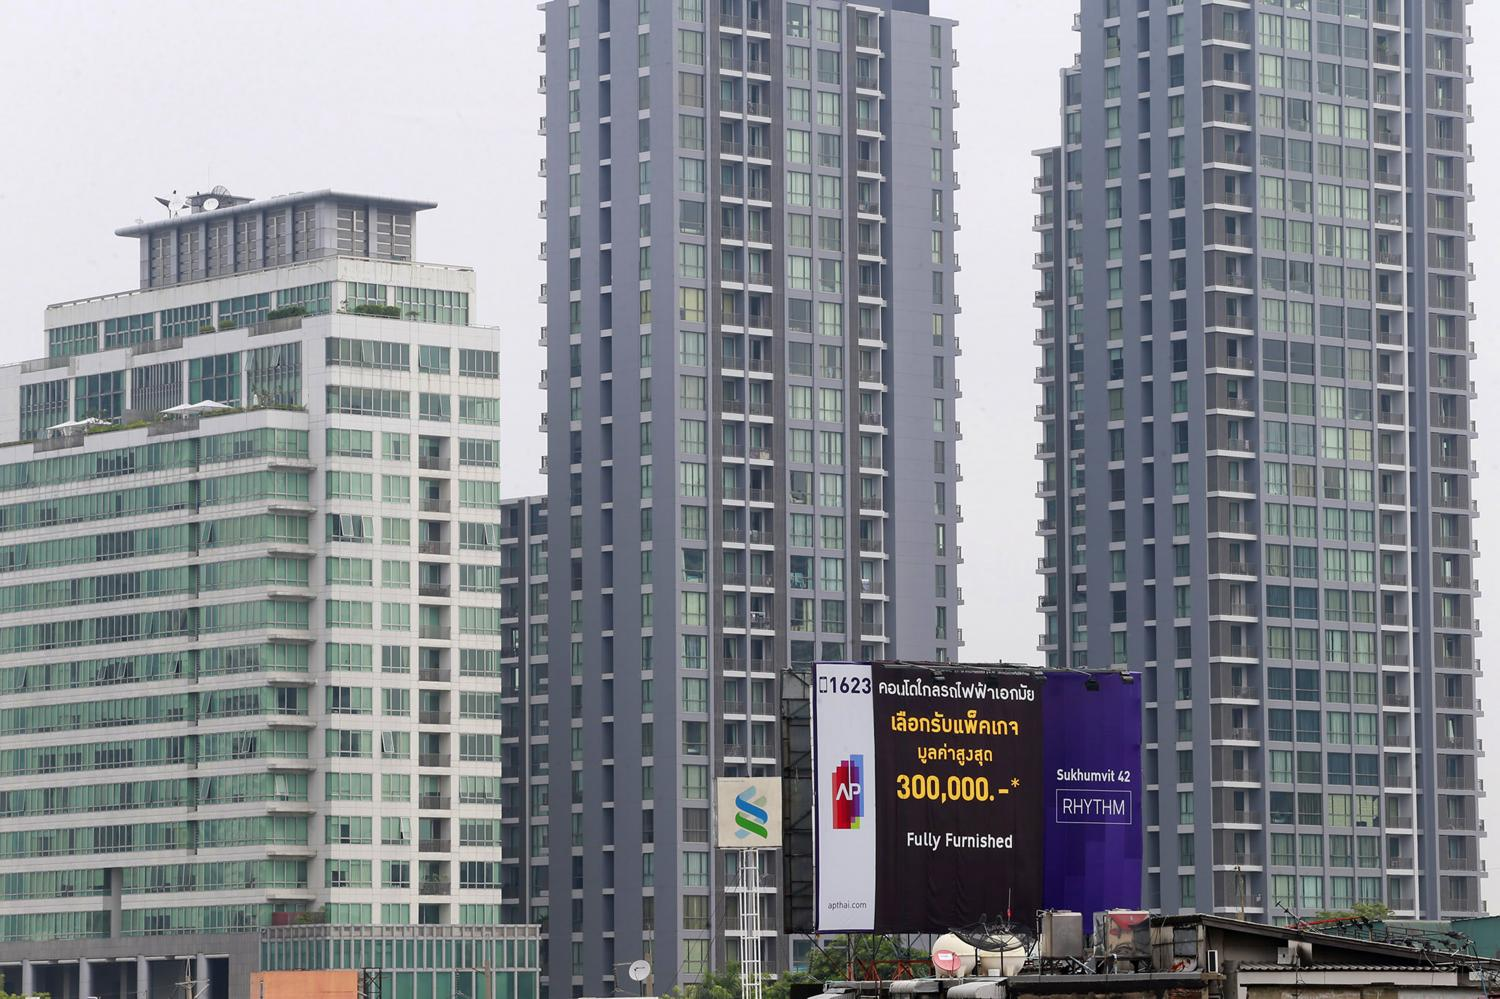 A board advertising discounts on fully furnished condo units is surrounded by high-rise condos in central Bangkok. Officials say the new Bangkok city plan will help condo development flourish.